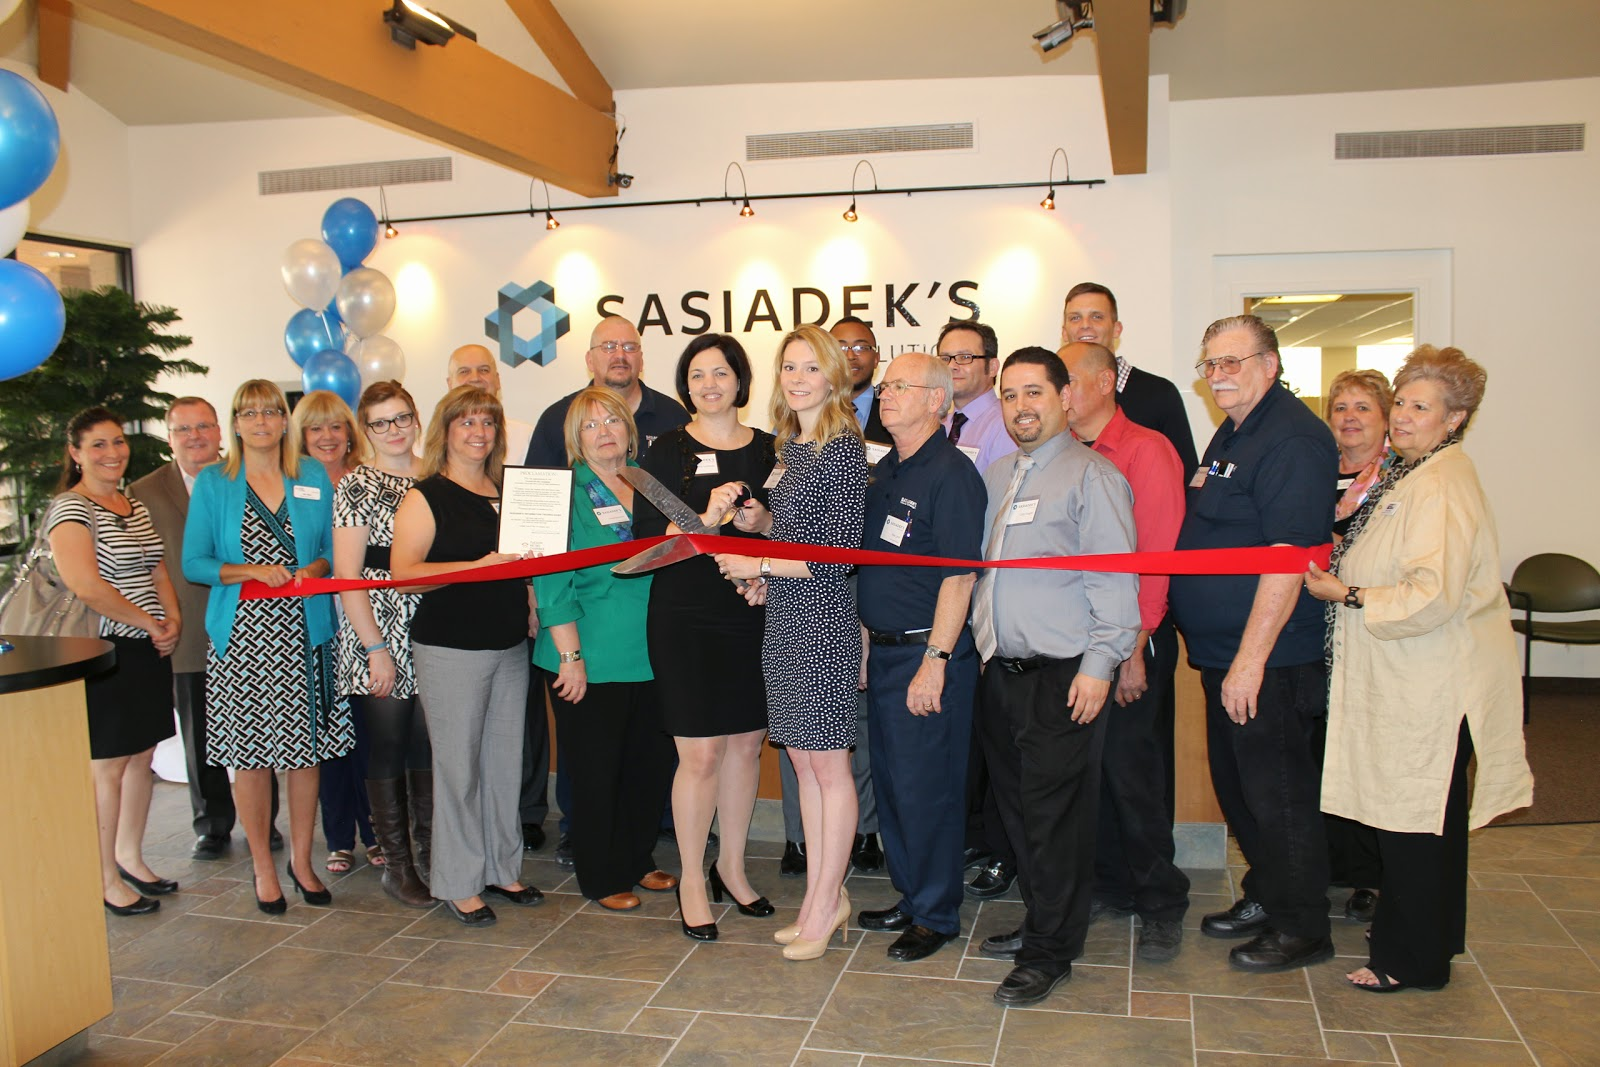 Sasiadek's IT Solutions hosted a ribbon cutting ceremony and open house celebration to mark the opening of their new 8,500 square foot office.  Stop by to see the latest technology in computing and printing solutions in their state of the art showroom.